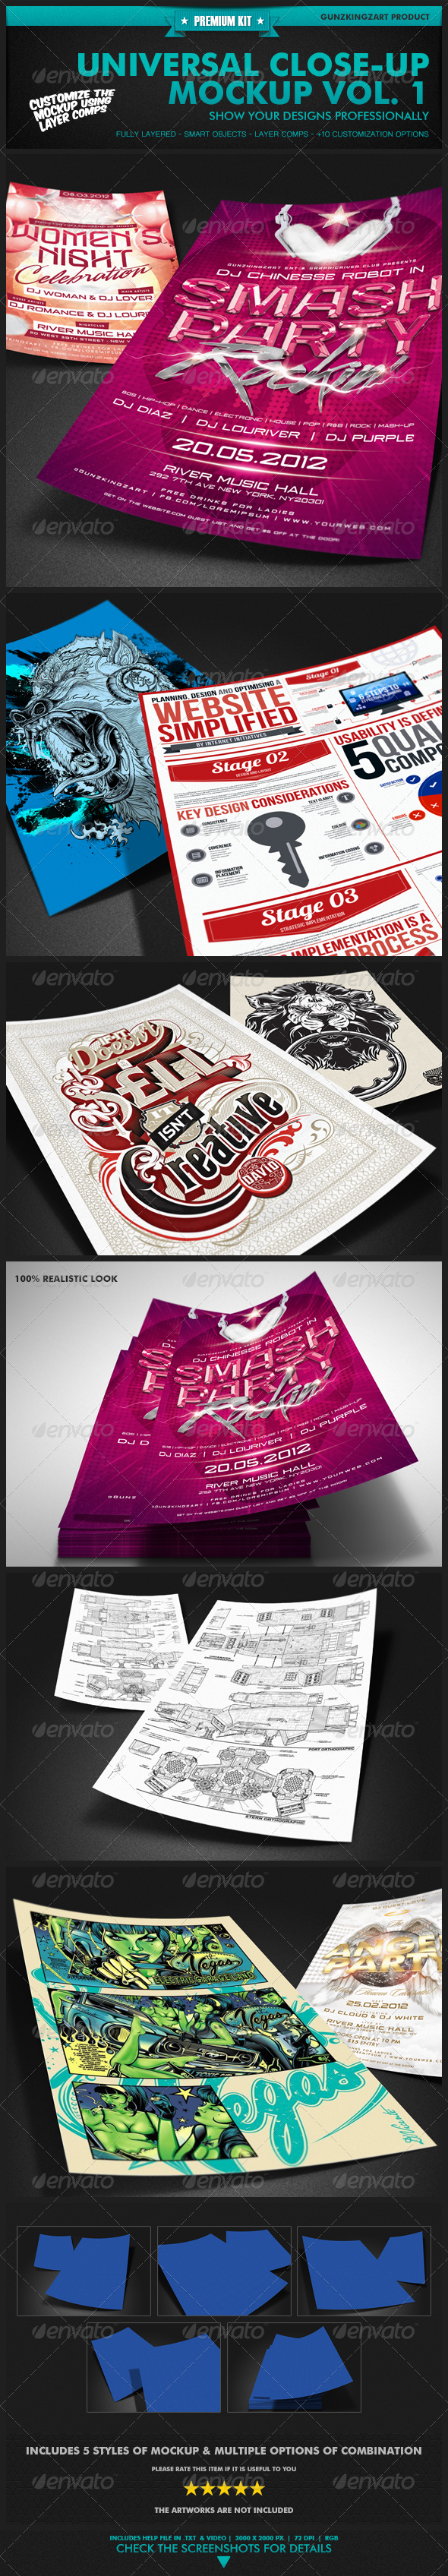 GraphicRiver Universal Closeup Mockup Vol 1 Premium Kit 2384558